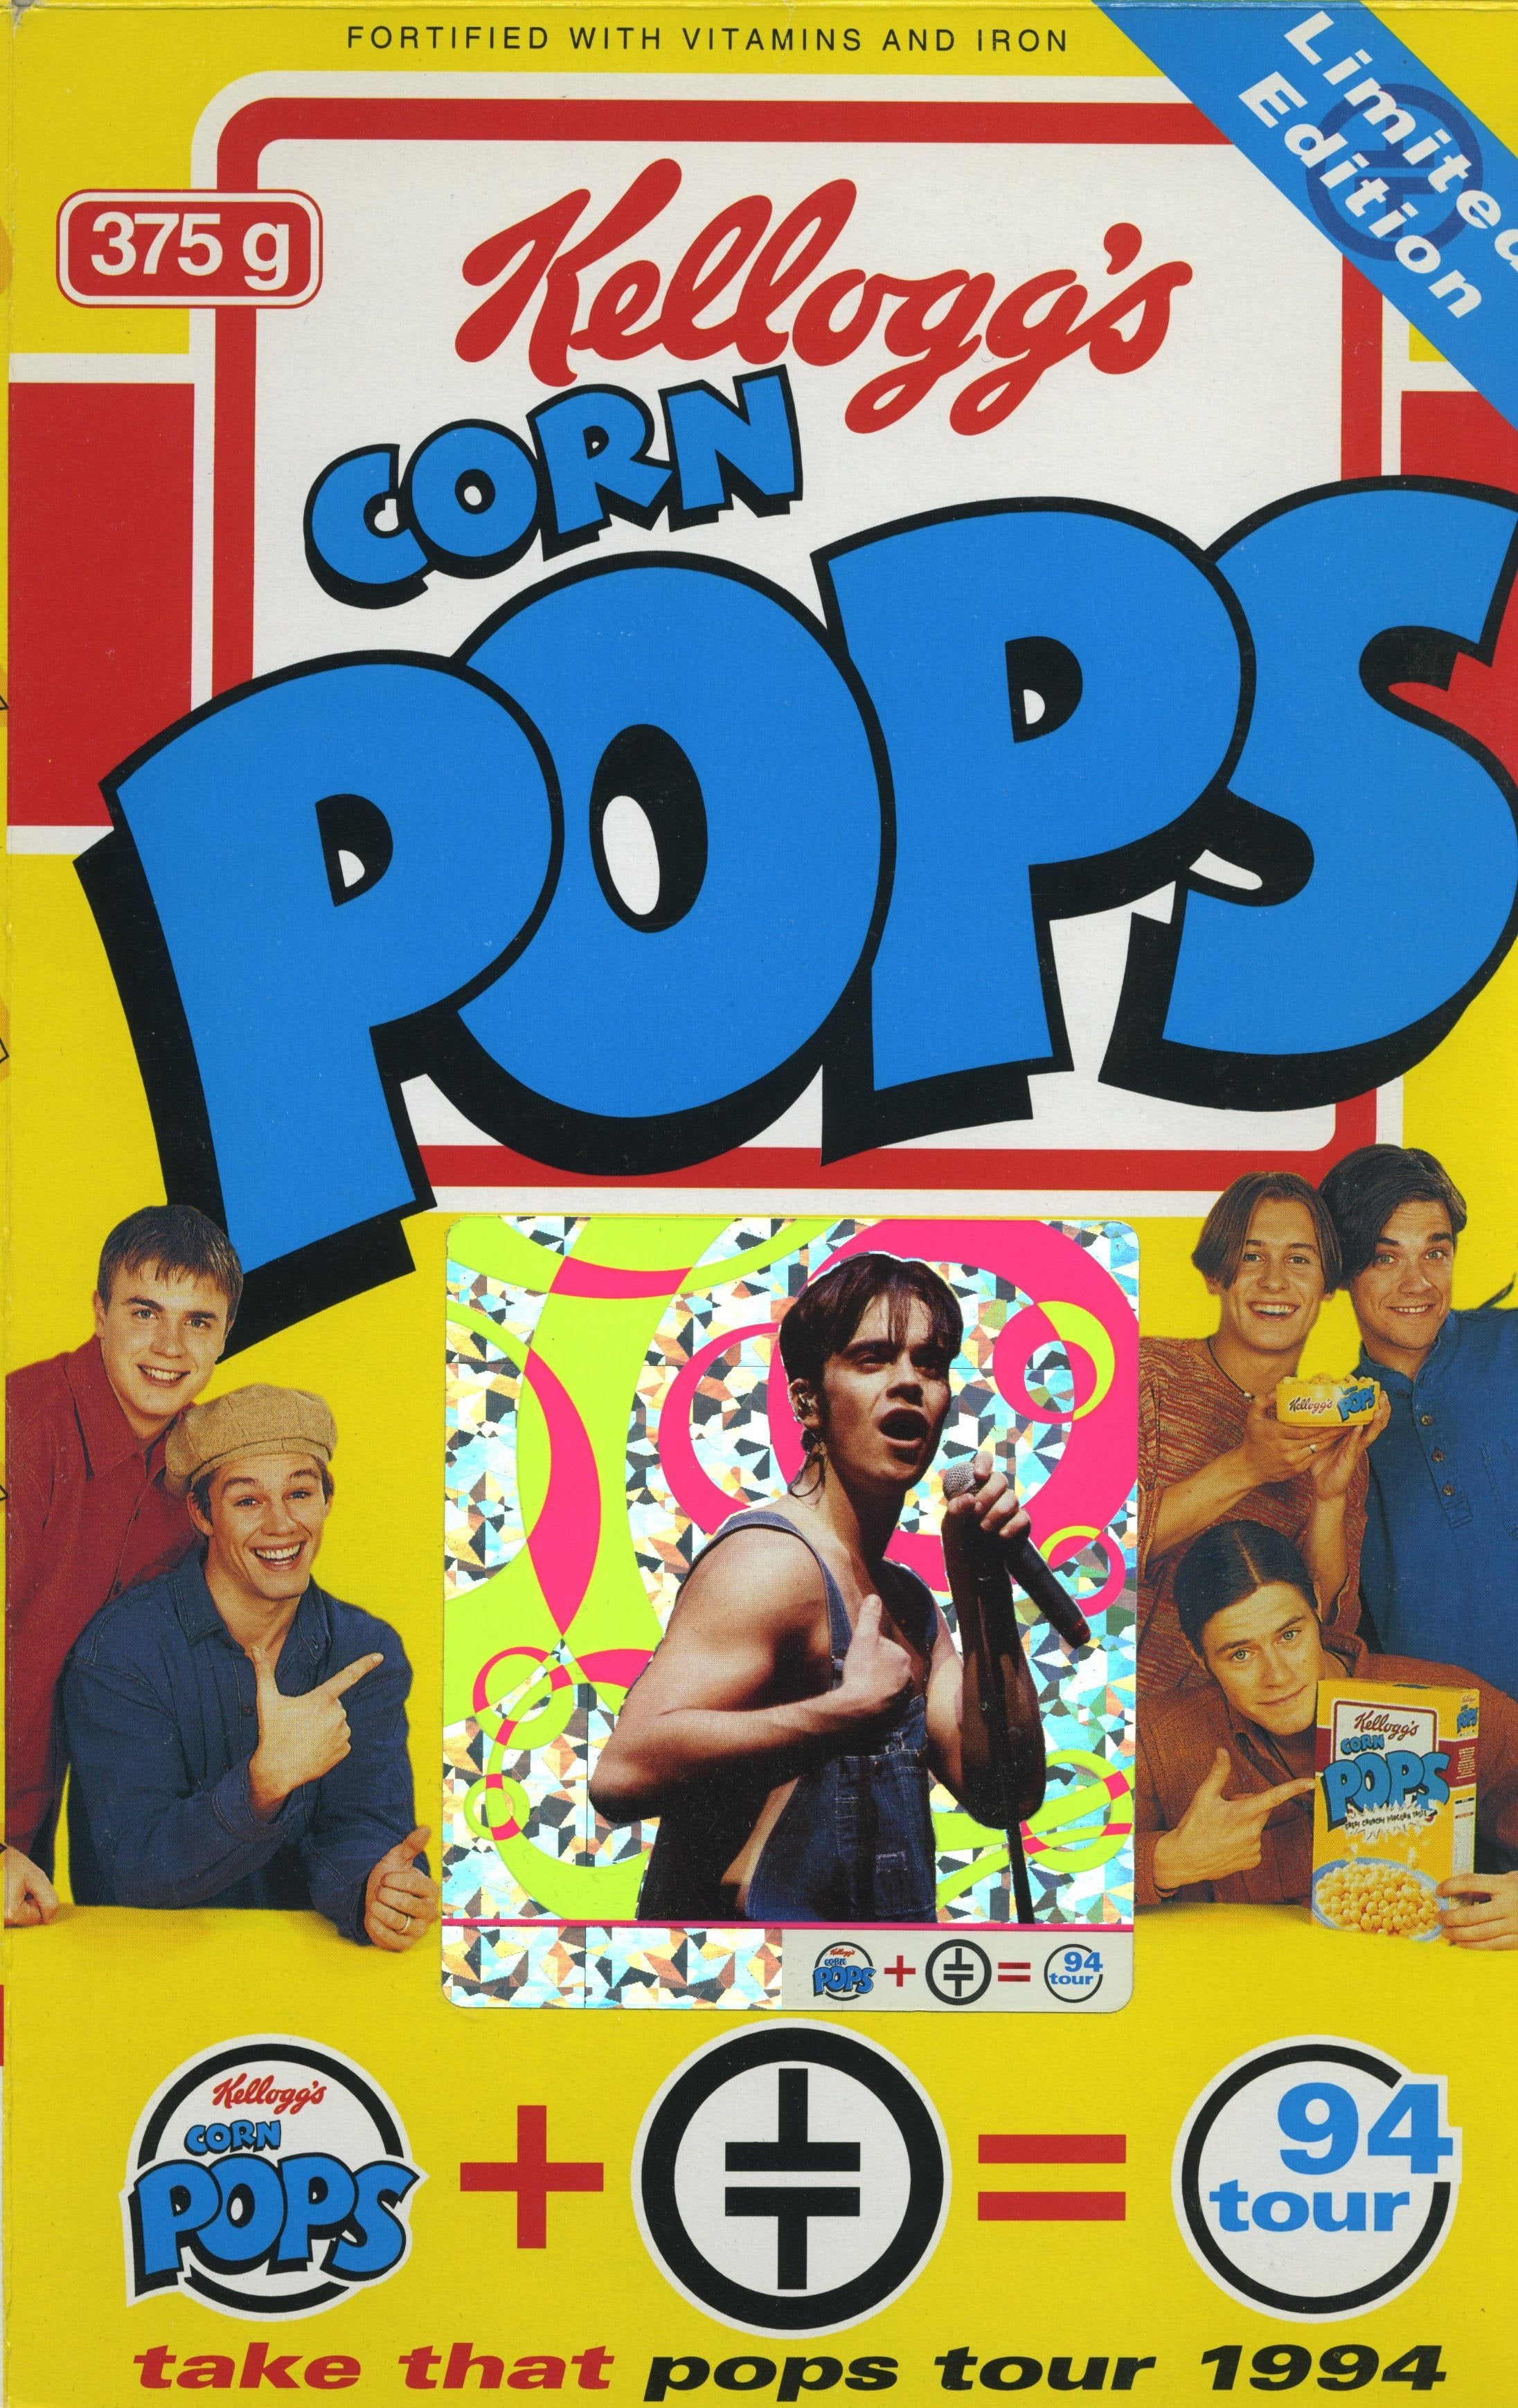 10 Things Bound To Make '90s And Early 2000s Kids Nostalgic